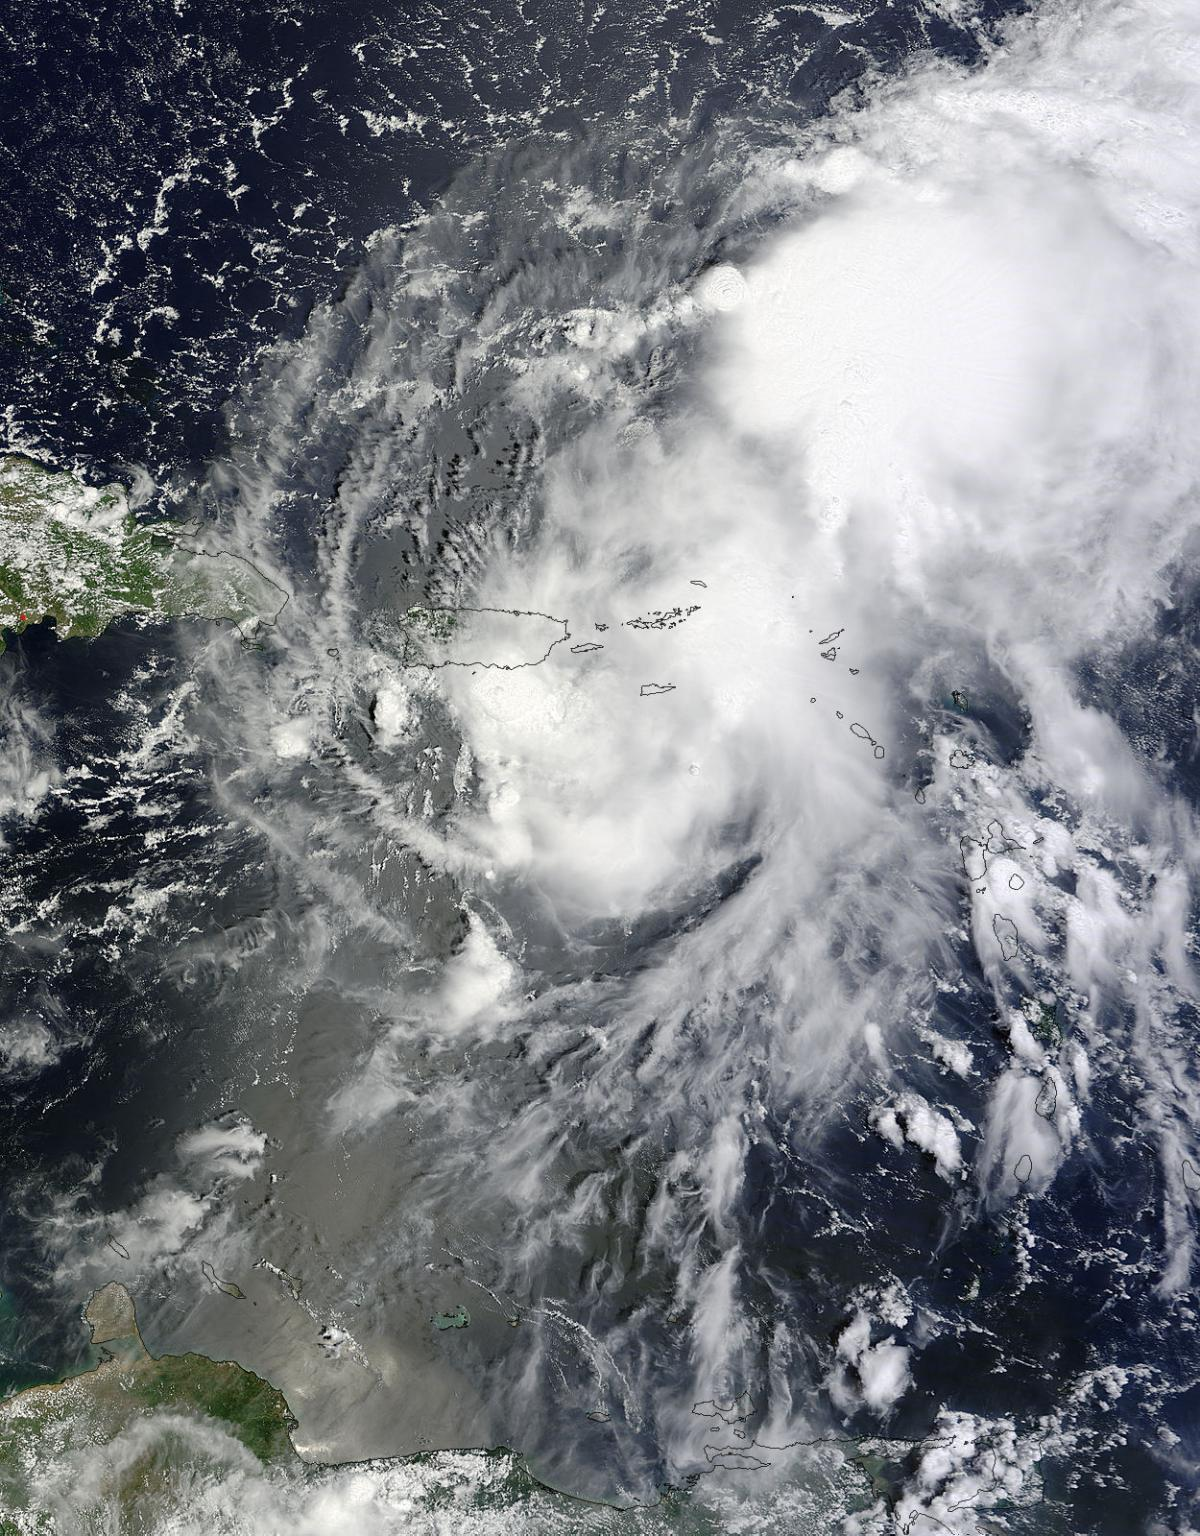 A NASA satellite captured this image of Tropical Storm Gabrielle on Sept. 5 as it was approaching Puerto Rico.